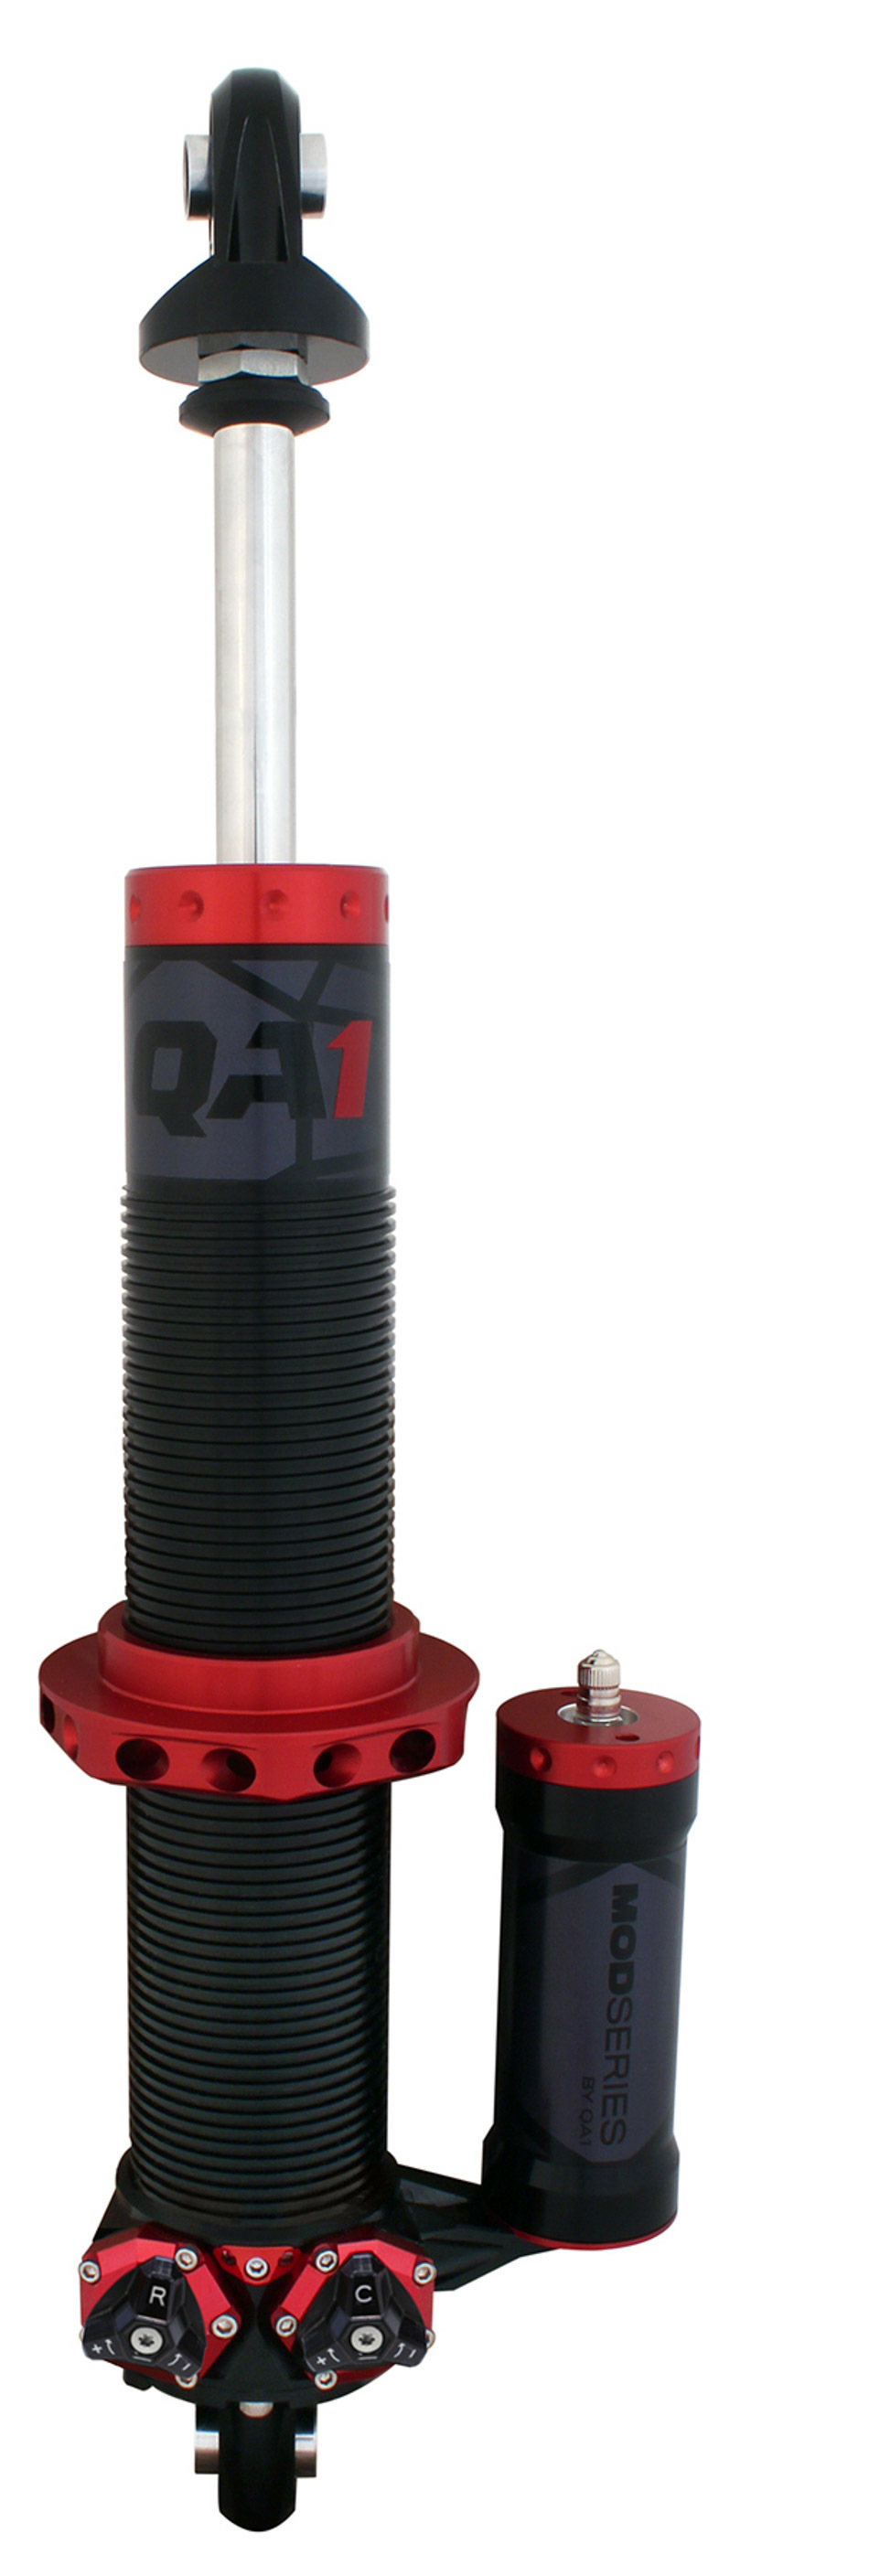 QA1 M911PR Shock, Mod Series, Twintube, 14.88 in Compressed / 23.63 in Extended, 2.00 in OD, Double Adjustable, Aluminum, Black Anodize, Each